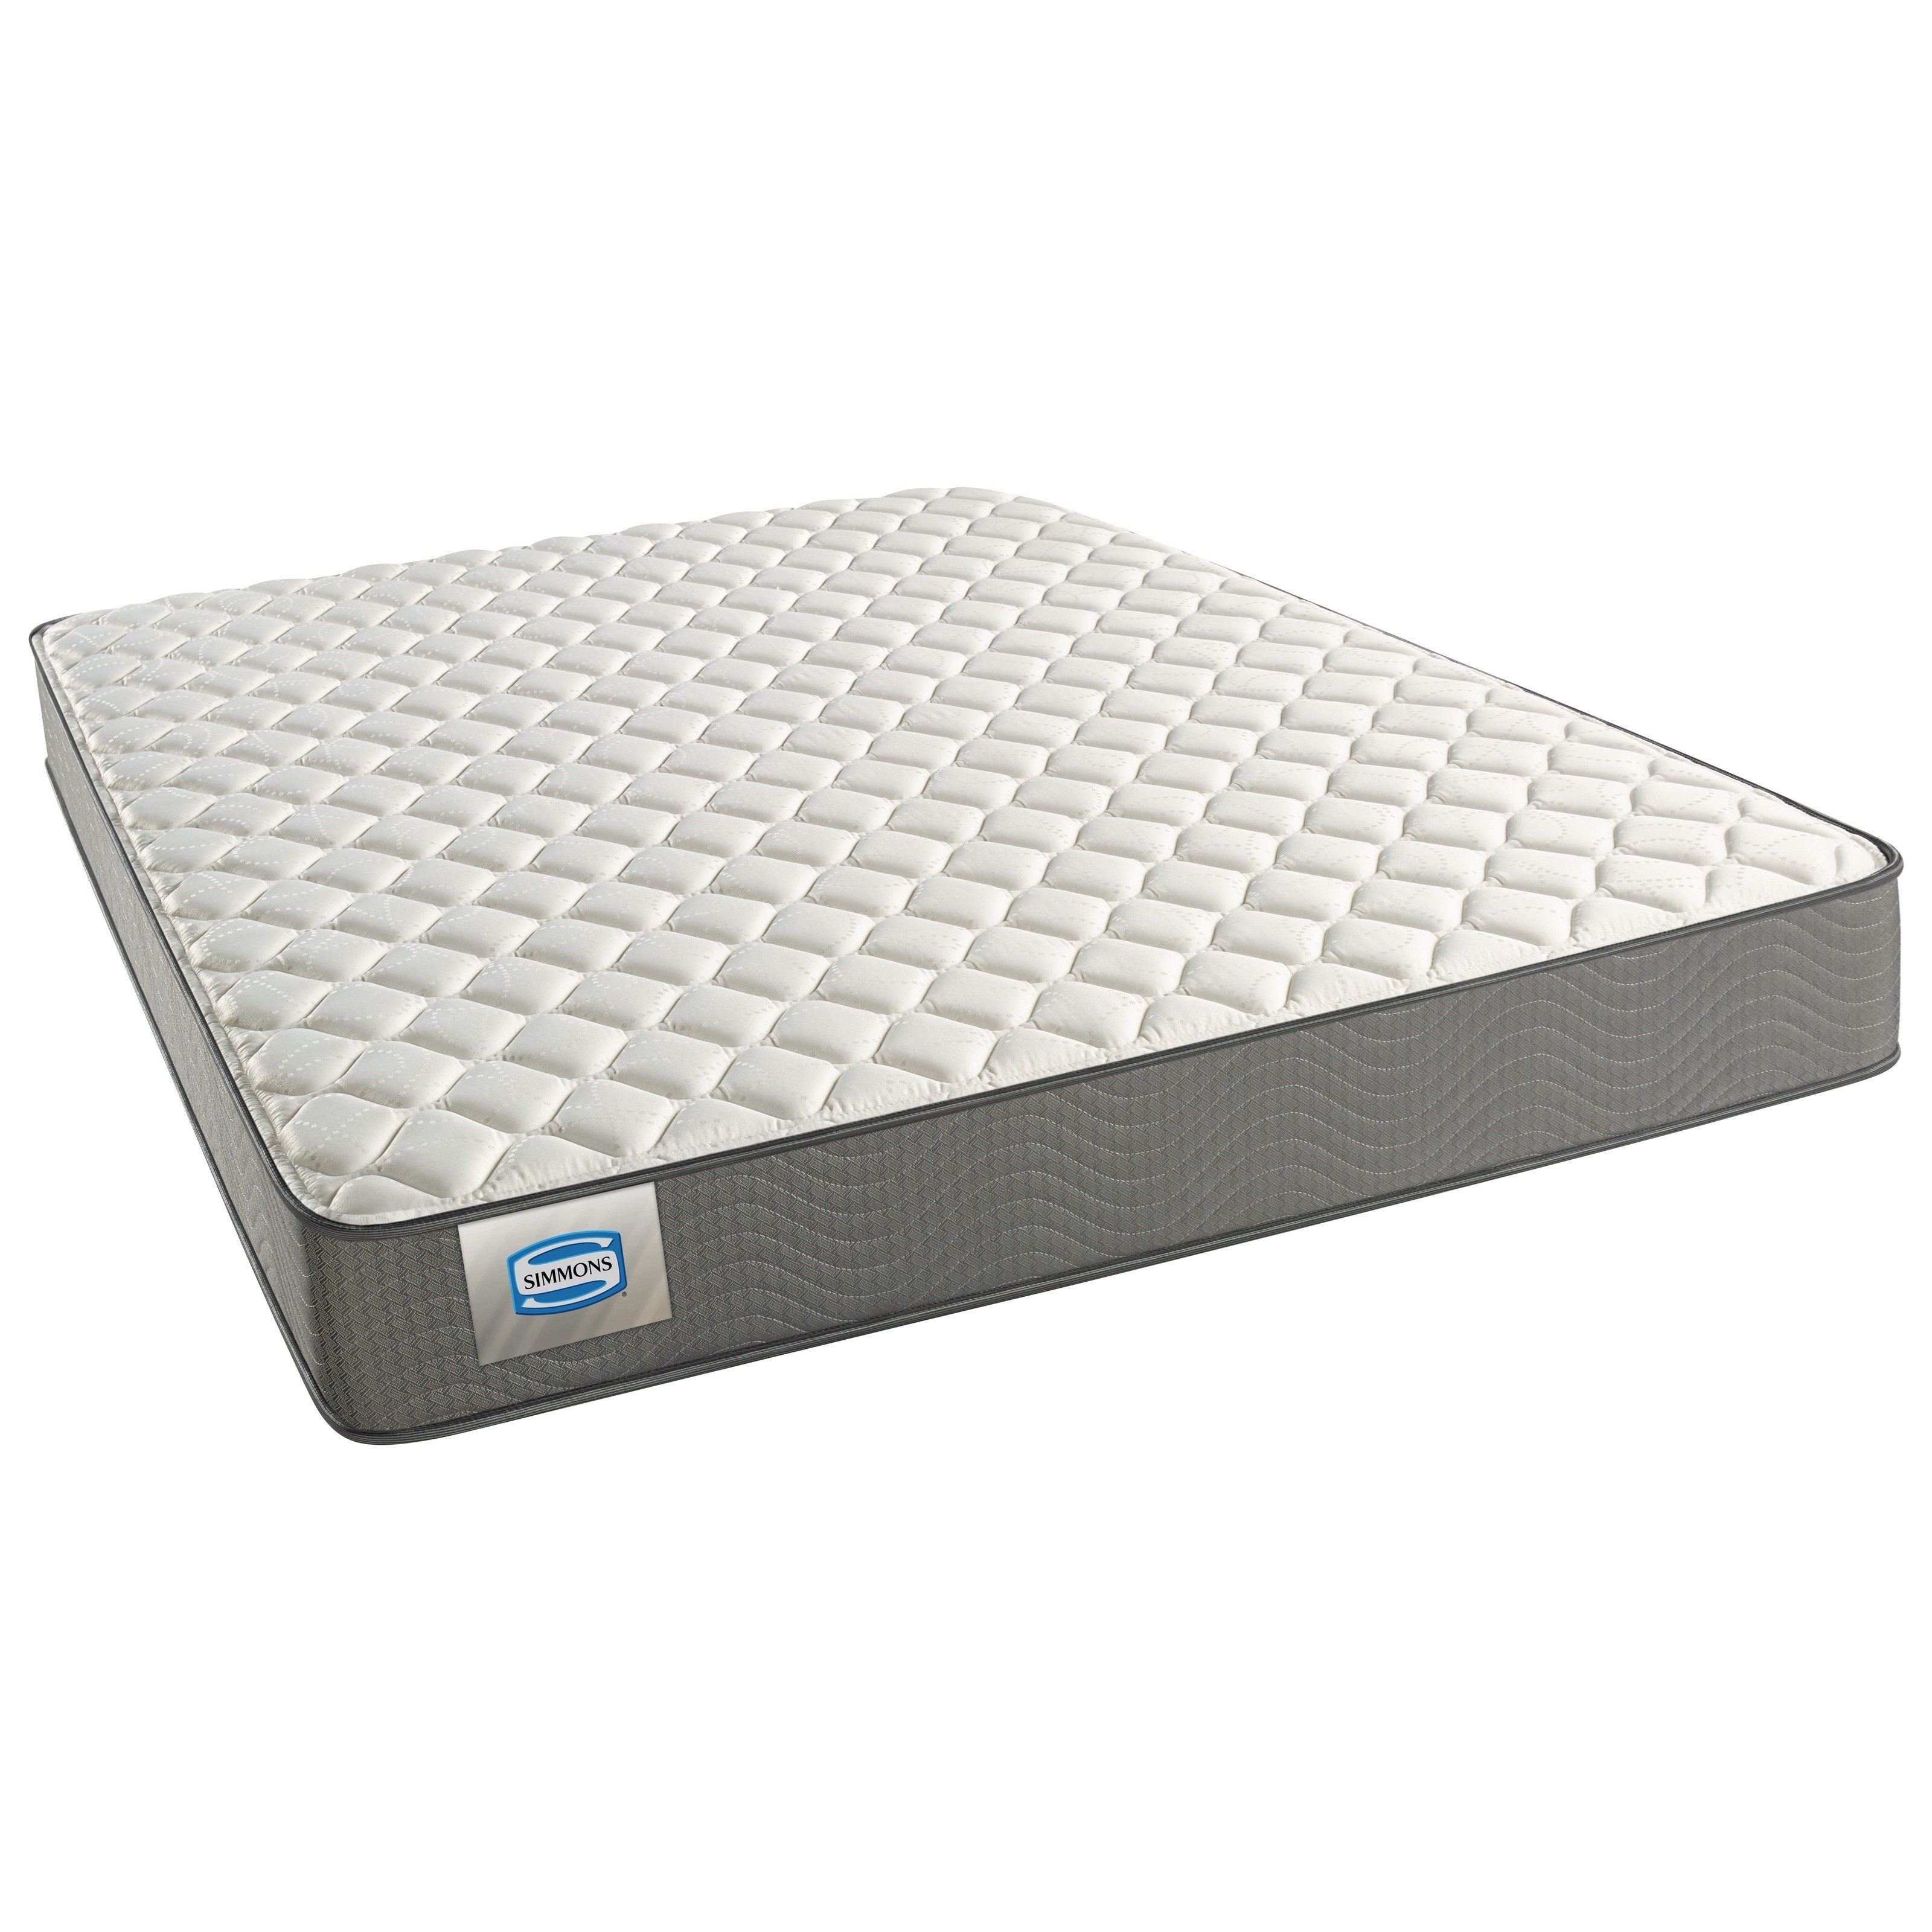 "Archmore Firm Hot Buy Twin XL 8 1/2"" Innerspring Mattress by Beautyrest at Houston's Yuma Furniture"